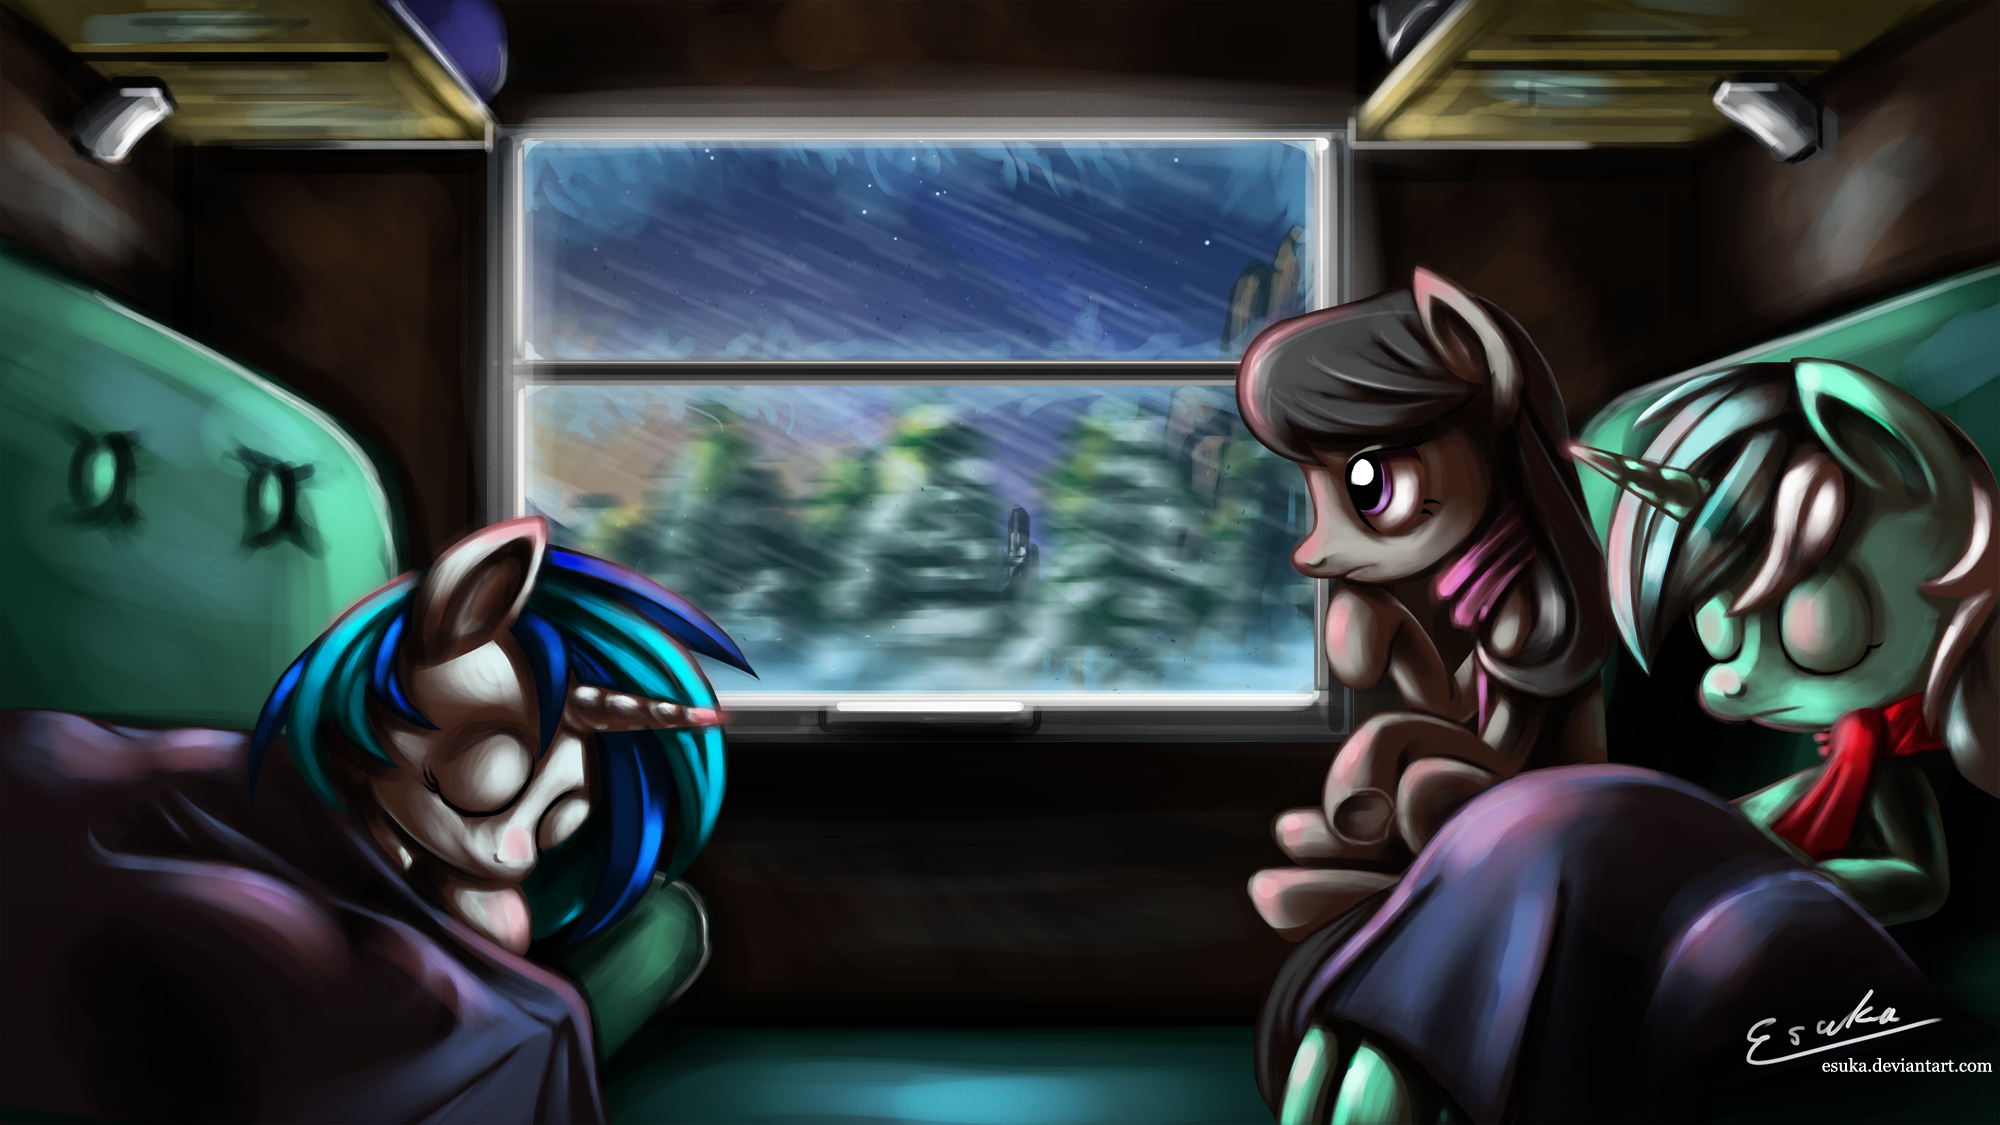 No Rest For The Weary My Little Pony Friendship Is